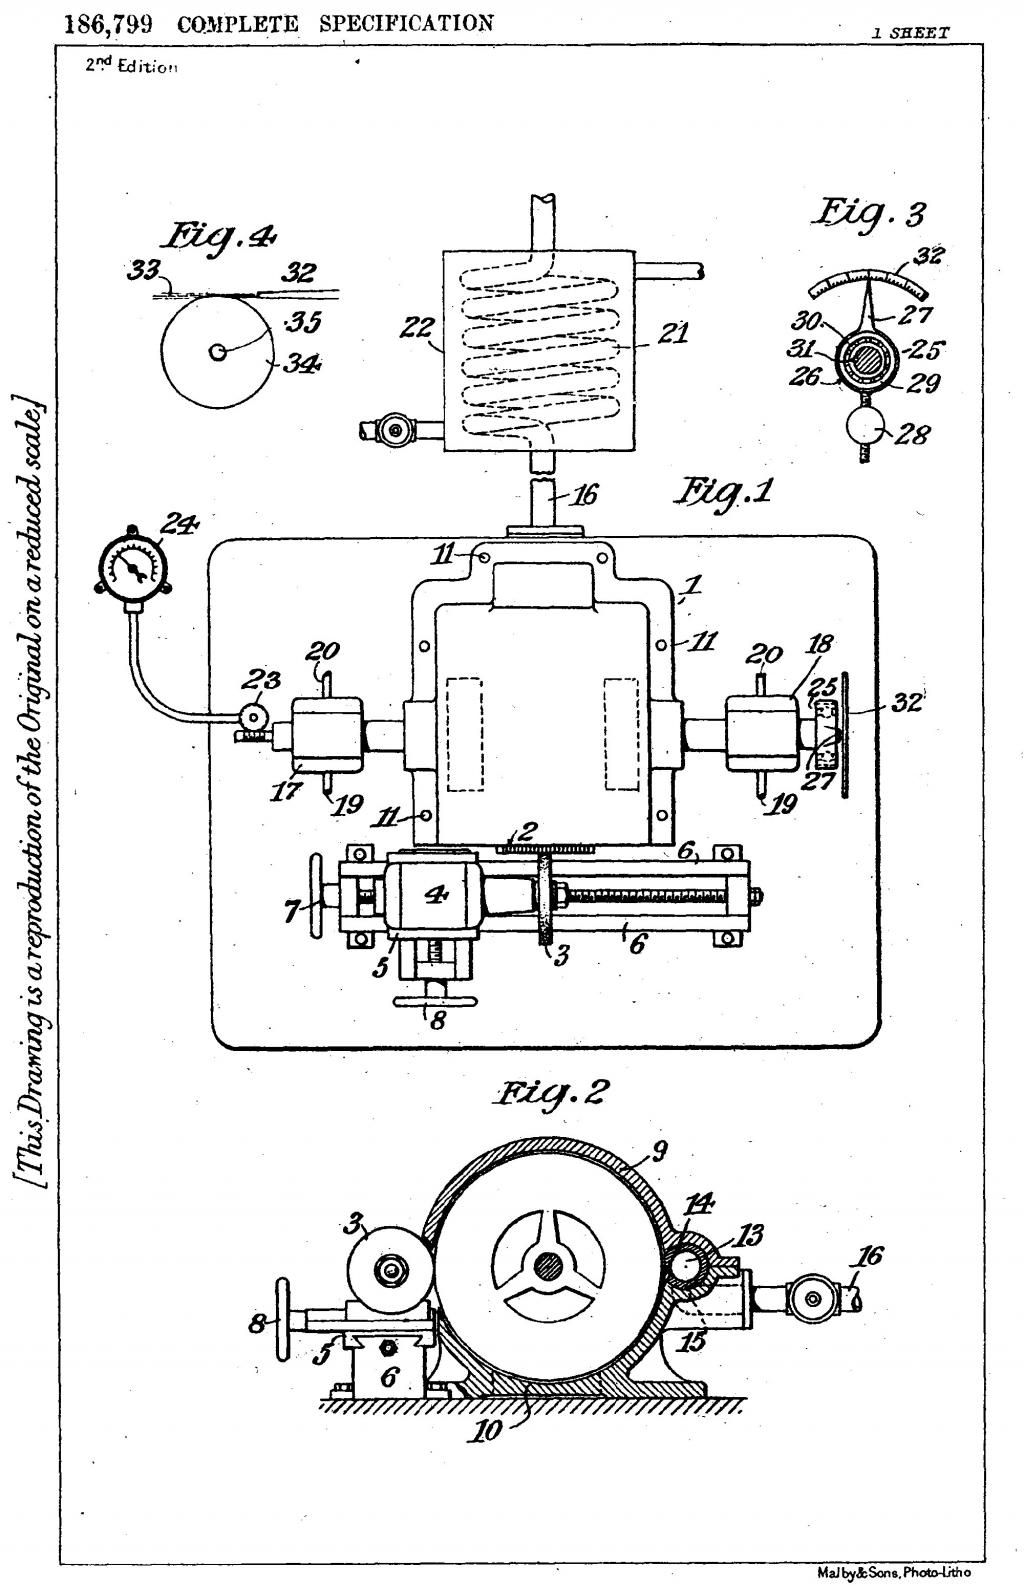 Nikola Tesla British Patent 186,799 - Process of and Apparatus for Balancing Rotating Machine Parts - Image 1